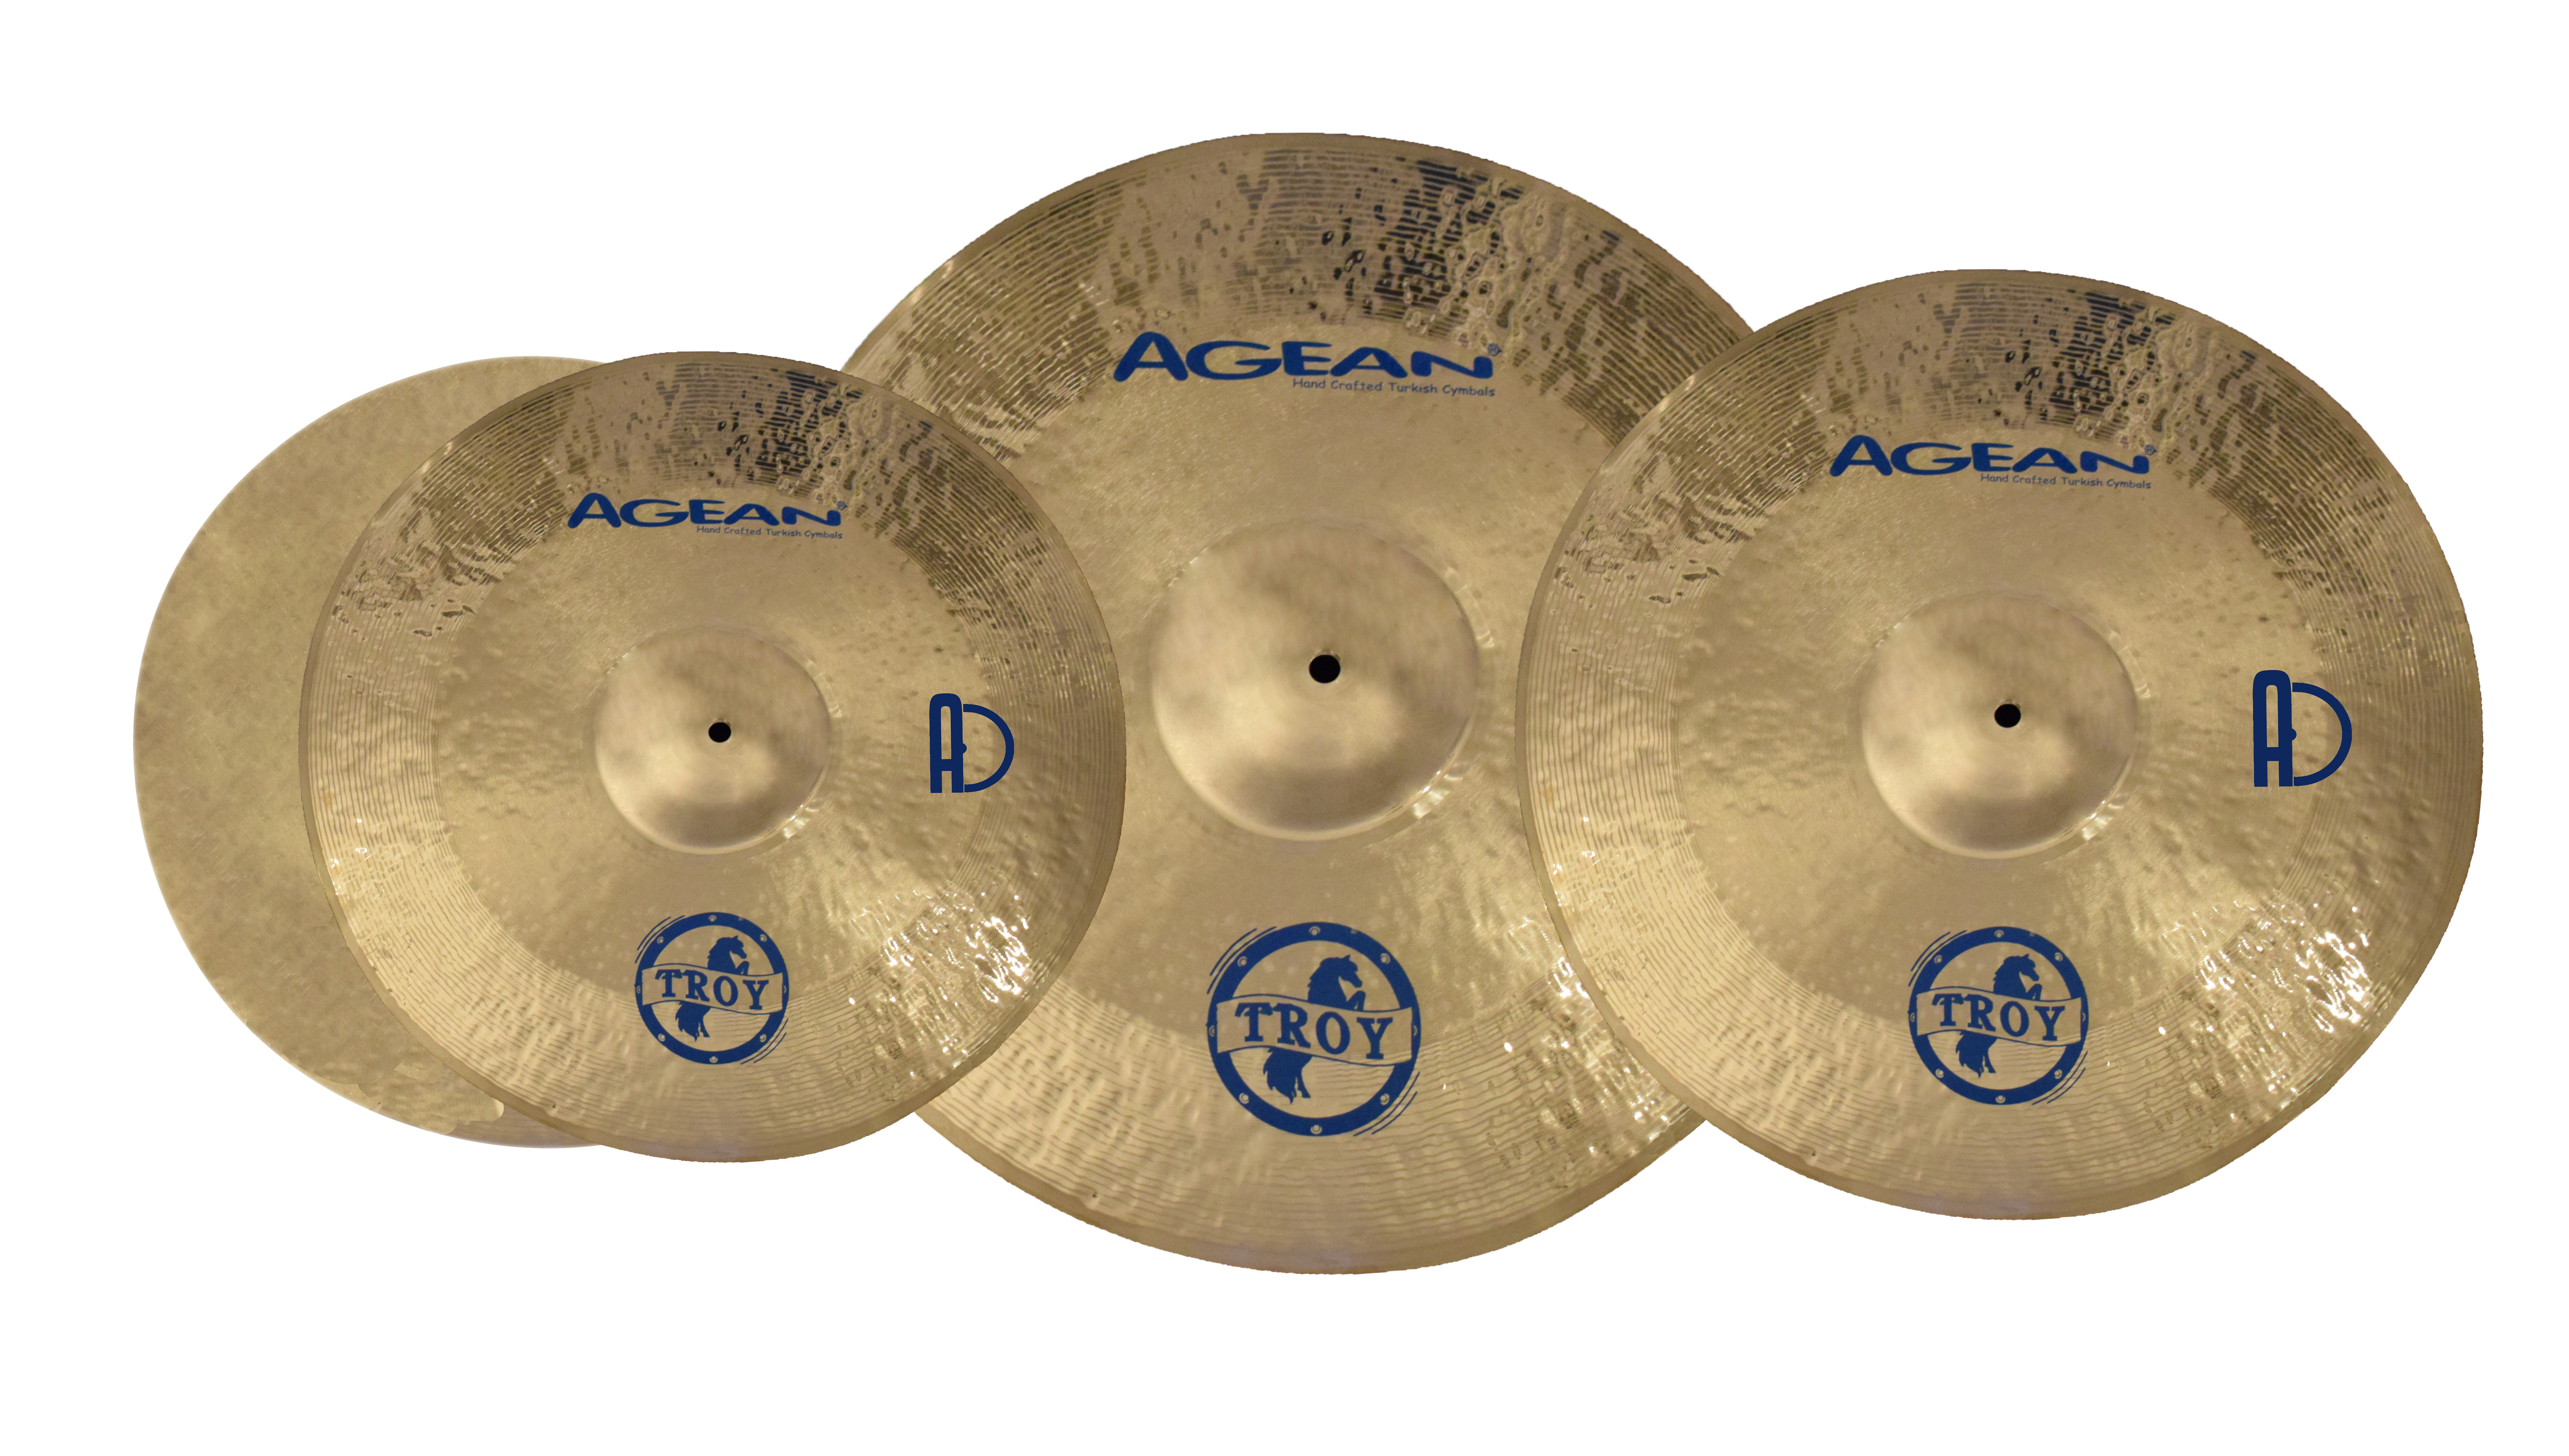 Agean Cymbals - Troy Cet